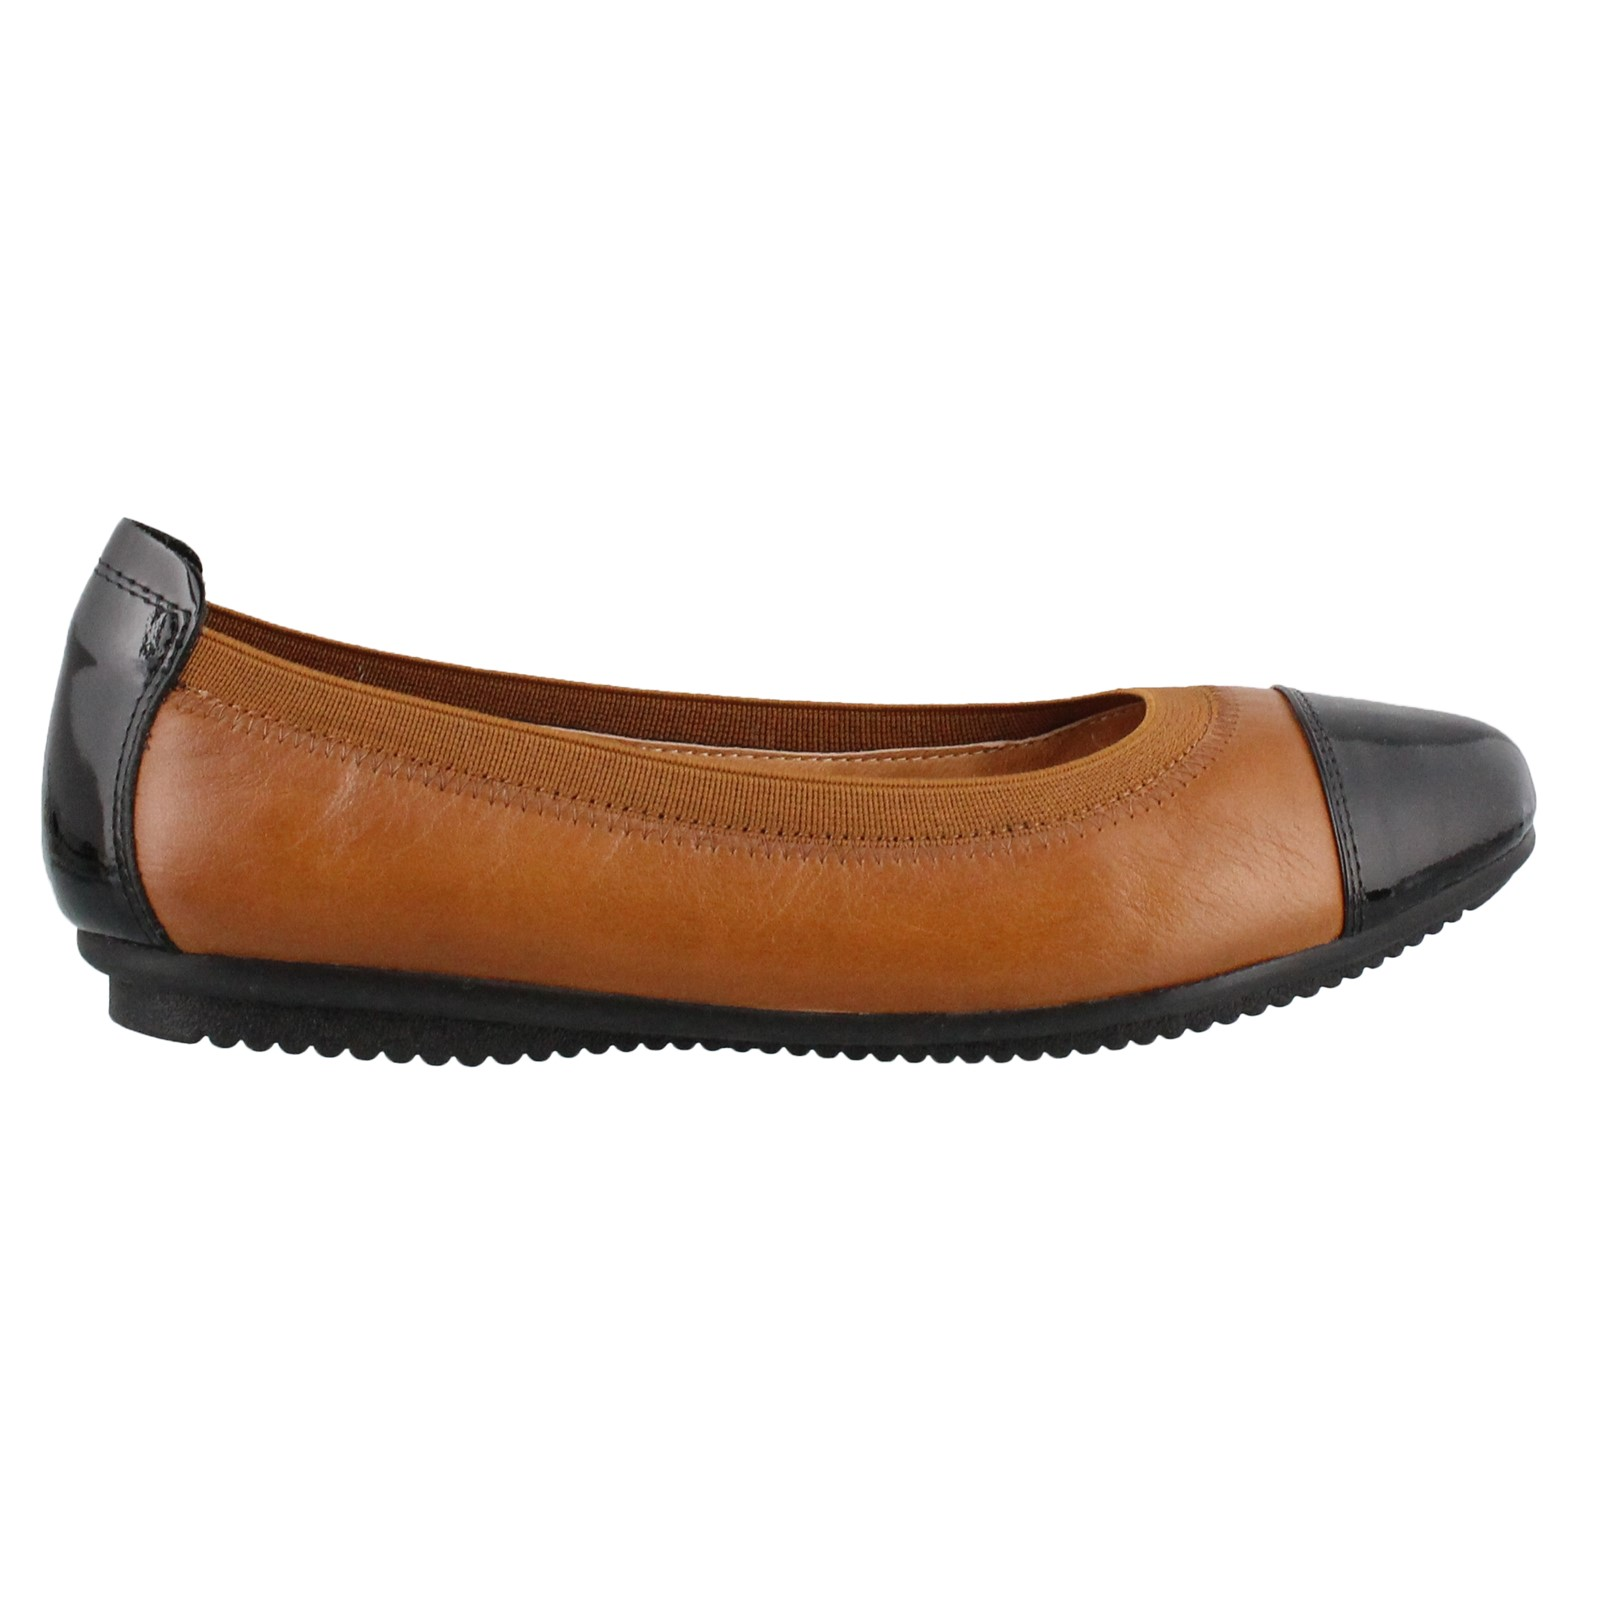 Women's Josef Seibel, Pippa 07 Slip on Flats